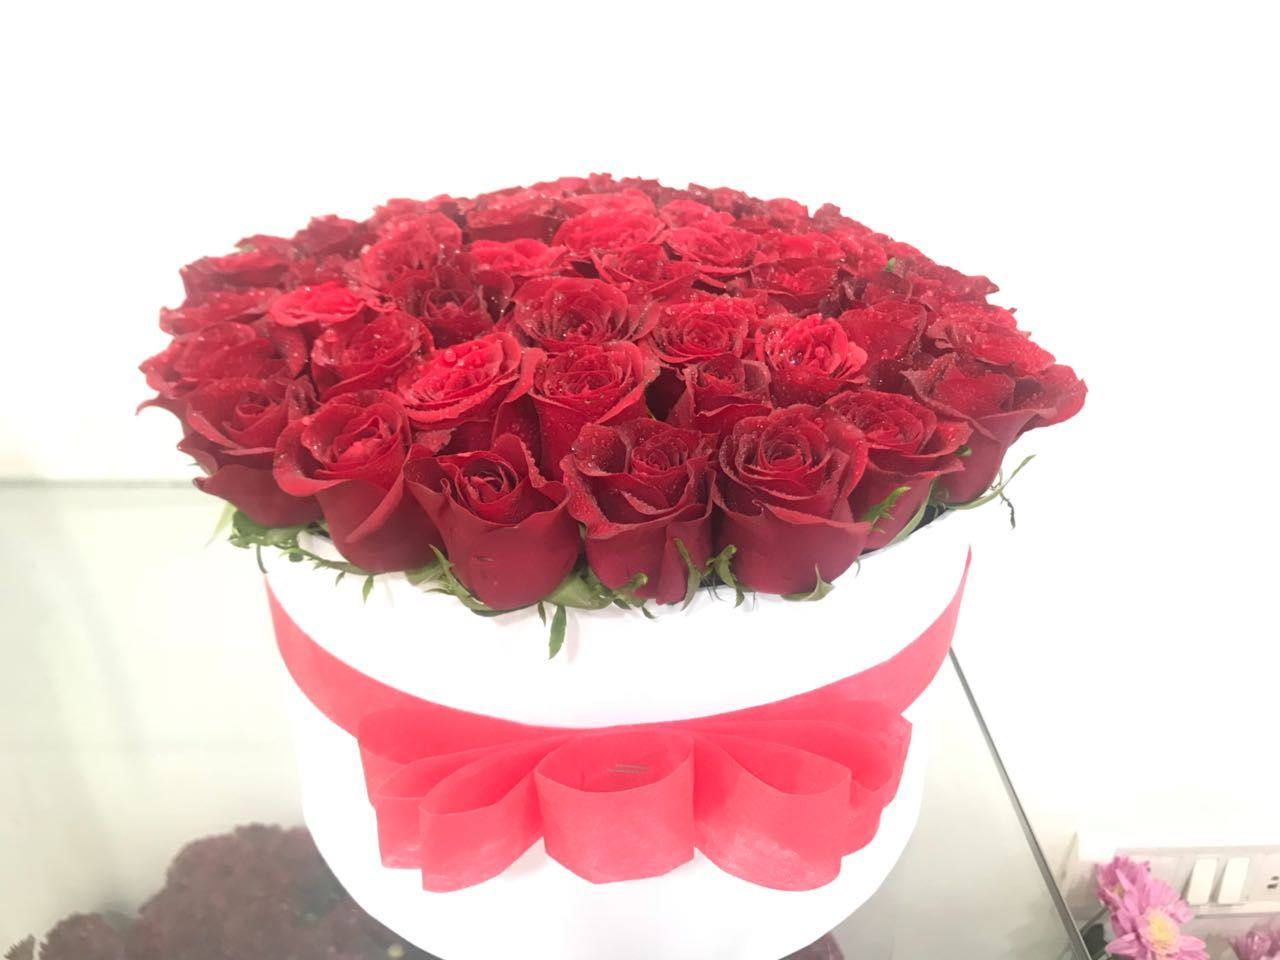 Blooms Only Offer Birthday Flower And Bouquet Delivery In Pune At